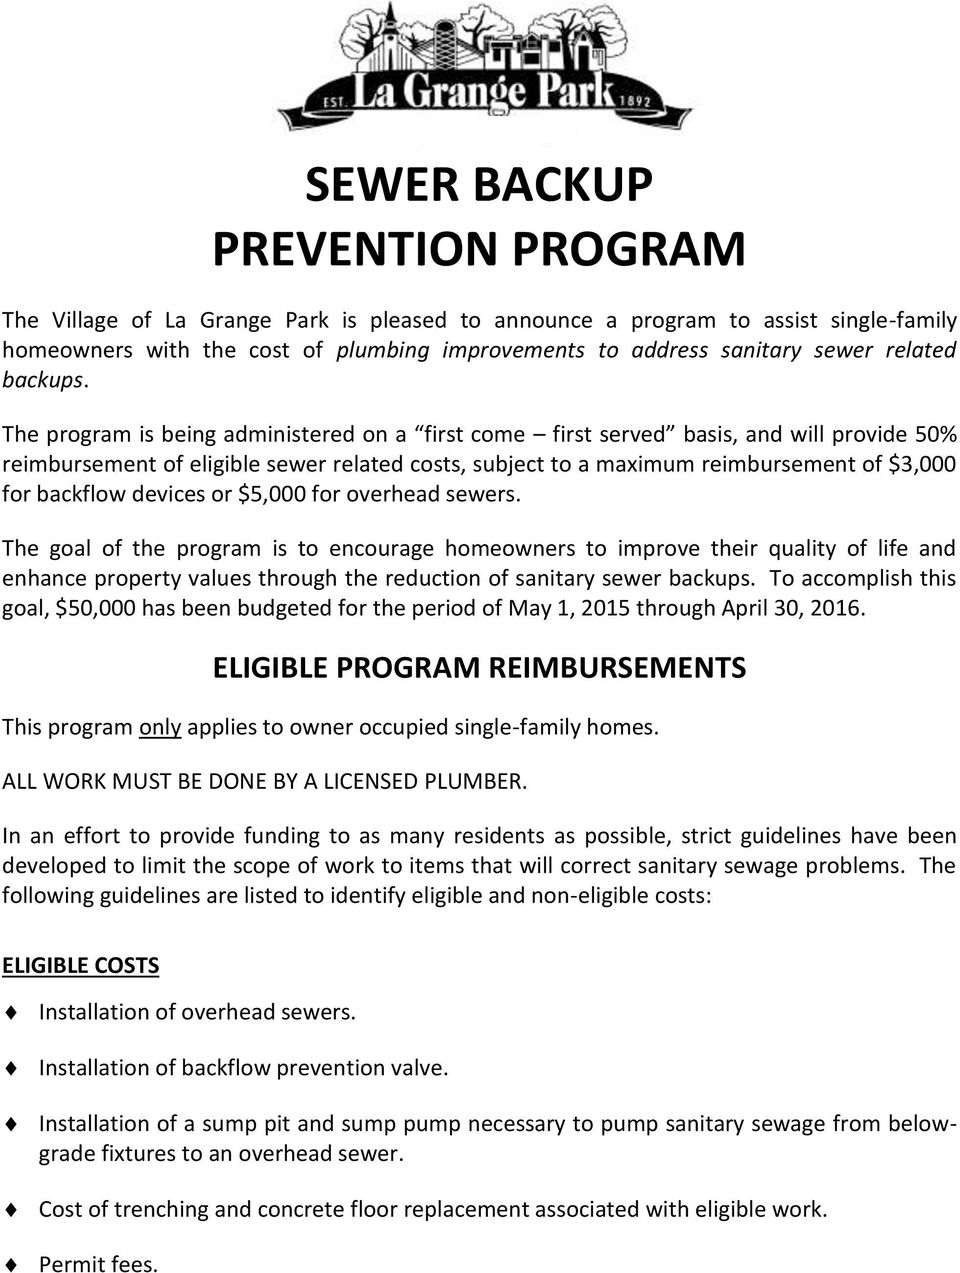 The program is being administered on a first come first served basis, and will provide 50% reimbursement of eligible sewer related costs, subject to a maximum reimbursement of $3,000 for backflow